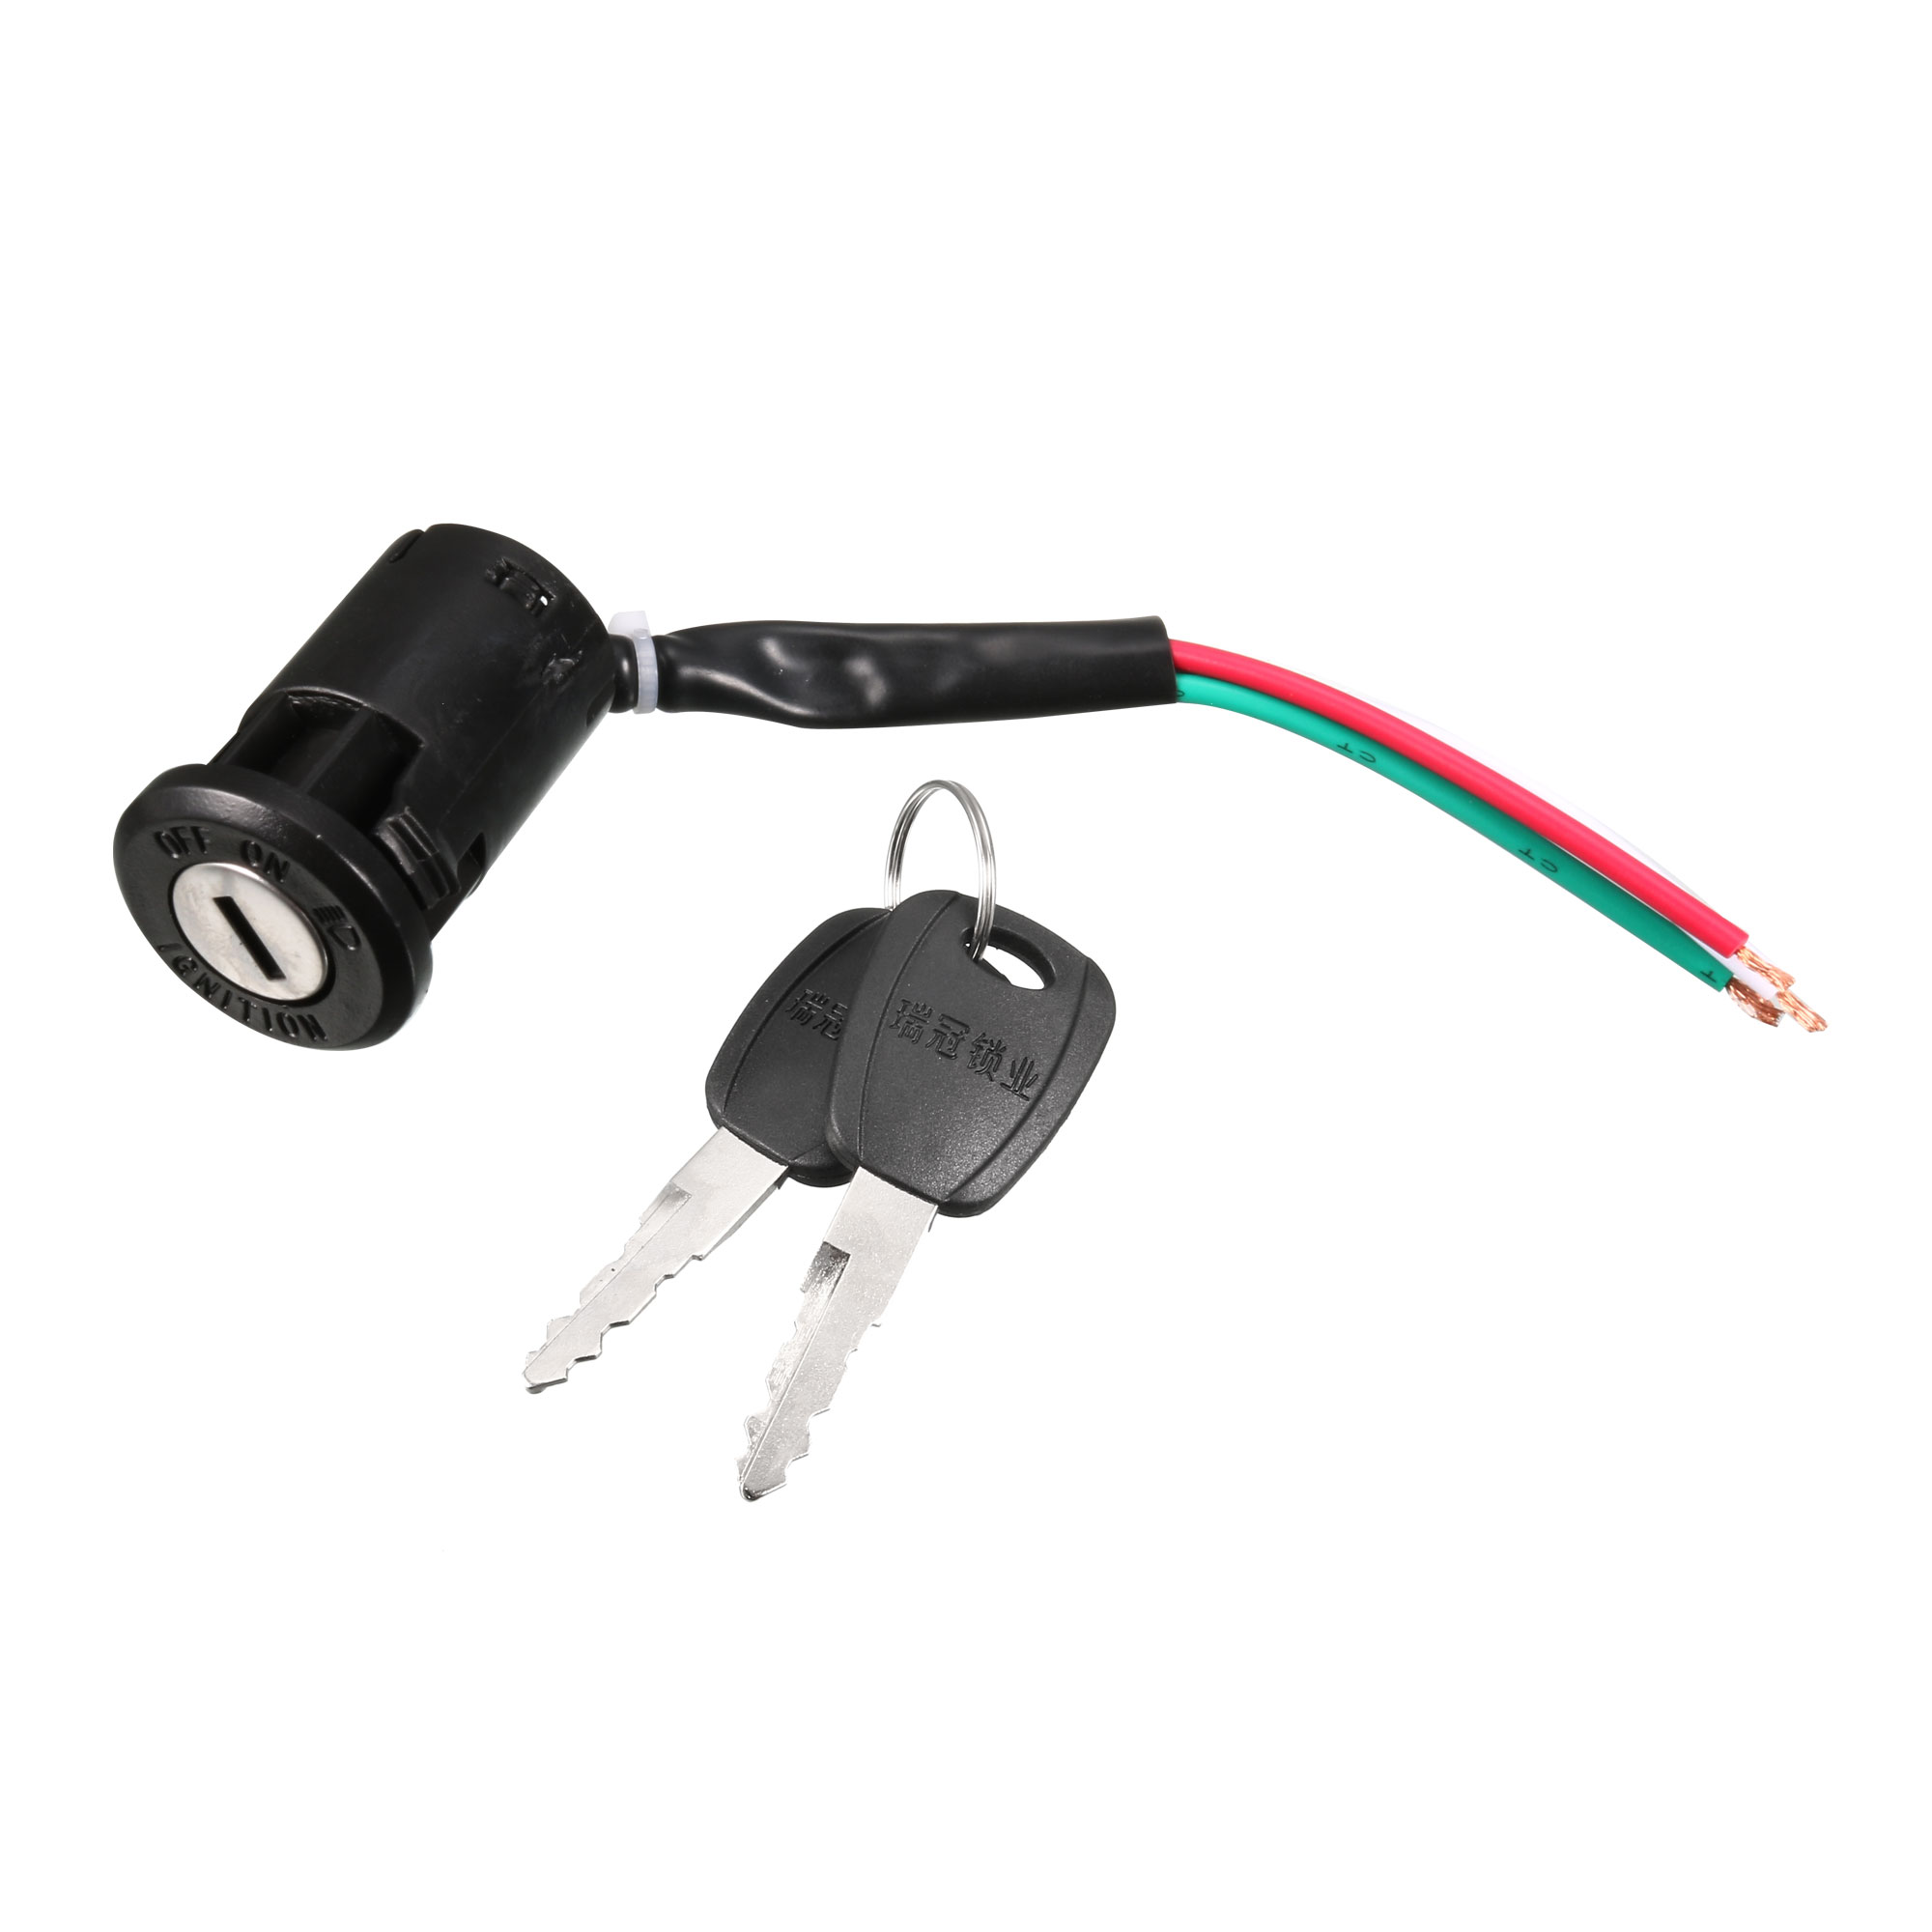 Black 3 Wired Electric Bike Bicycle Ignition Switch Lock + Two Spare Keys